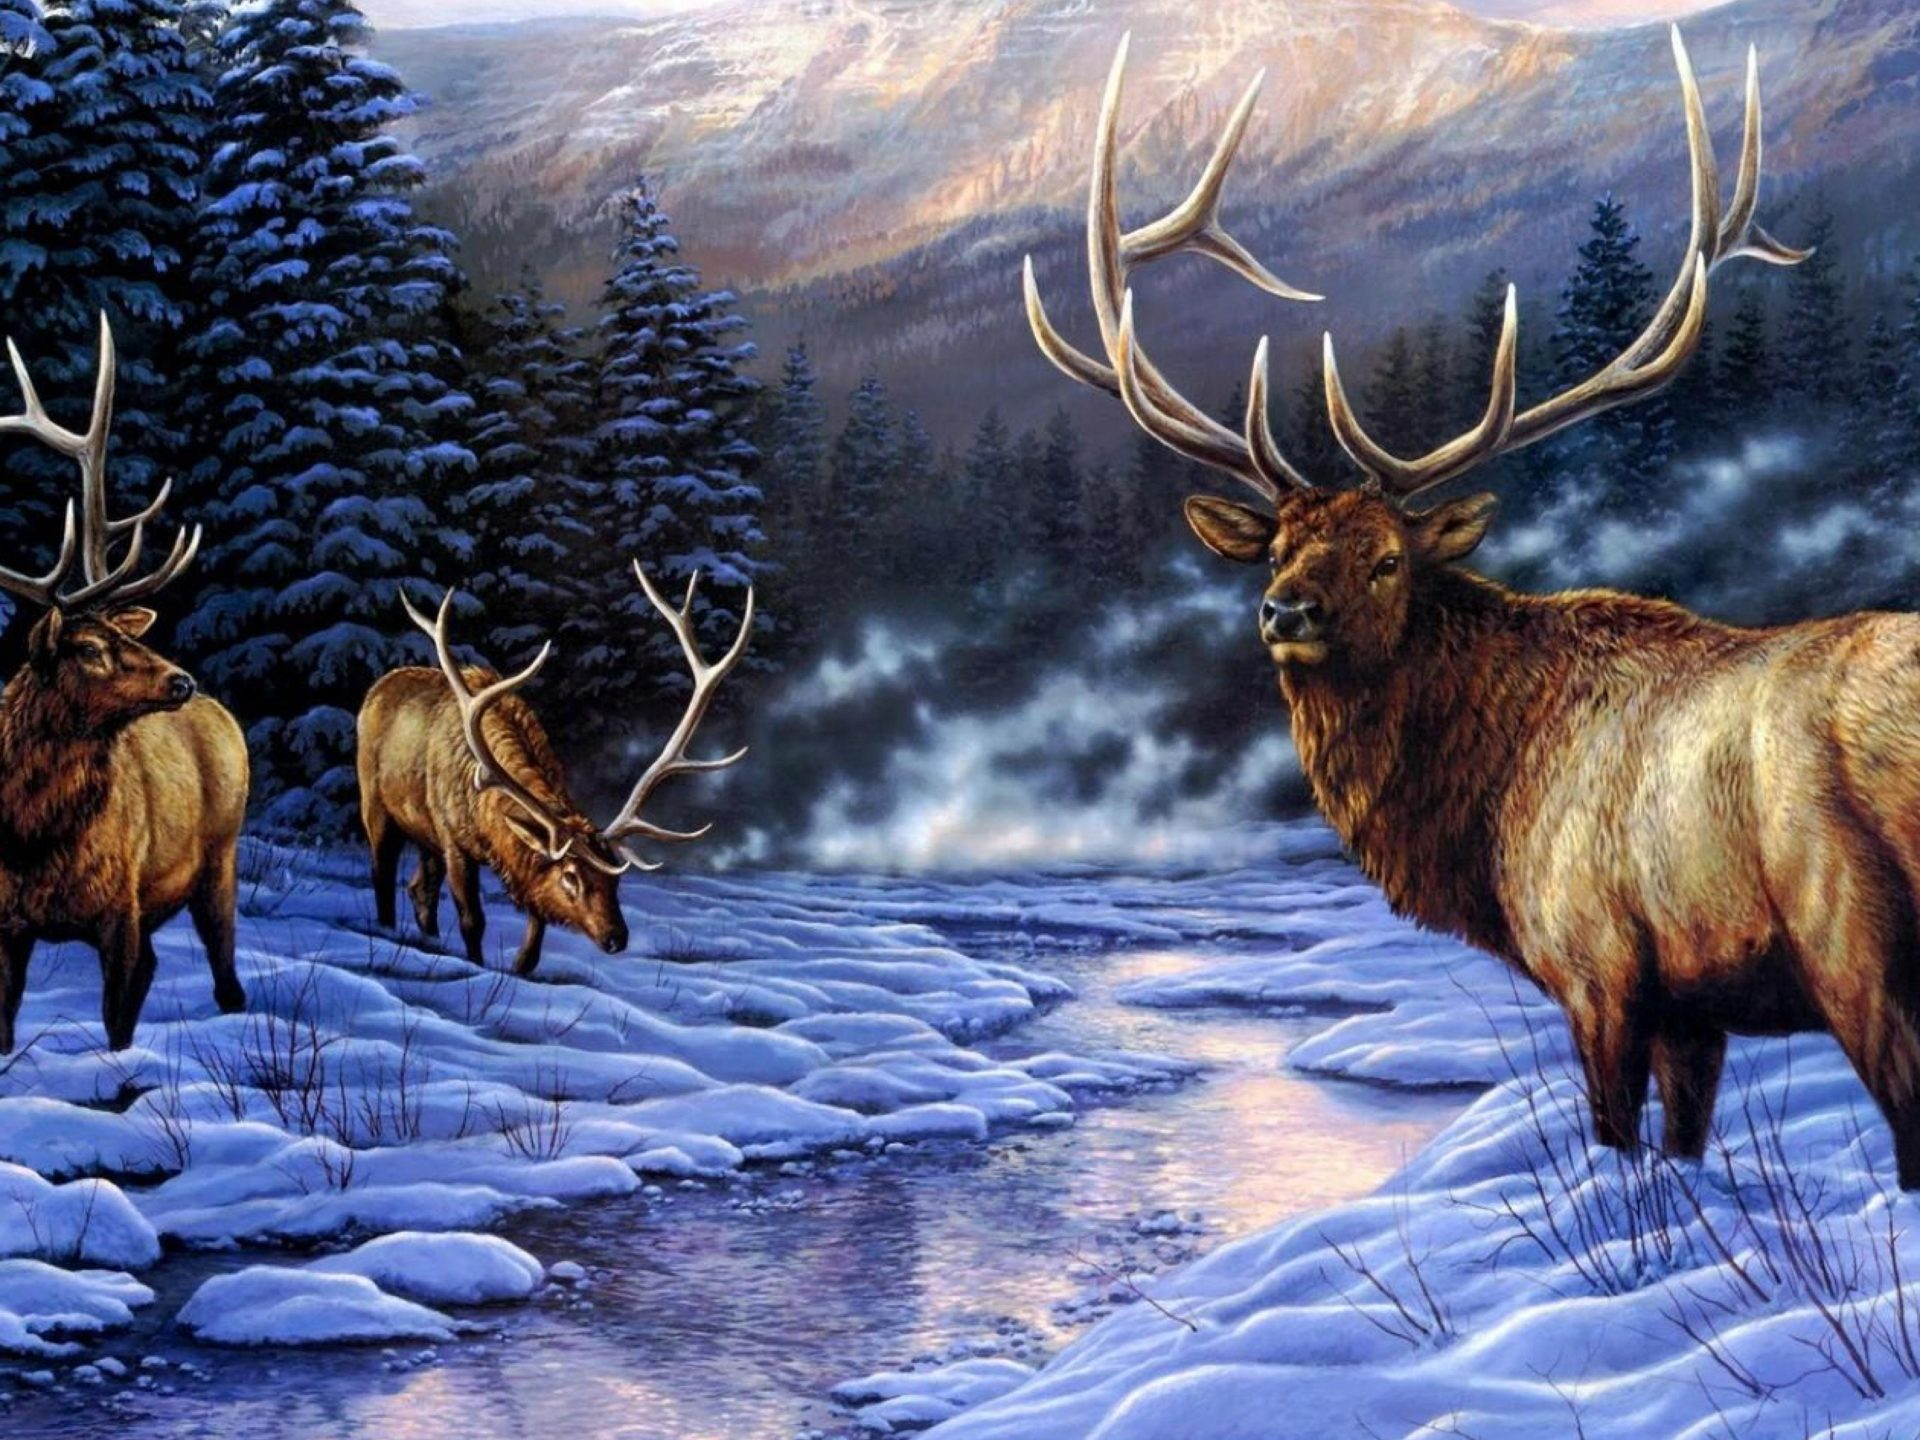 Cute Couple Wallpapers For Lock Screen Deer Artistic Photos With Animal Winter River Snow